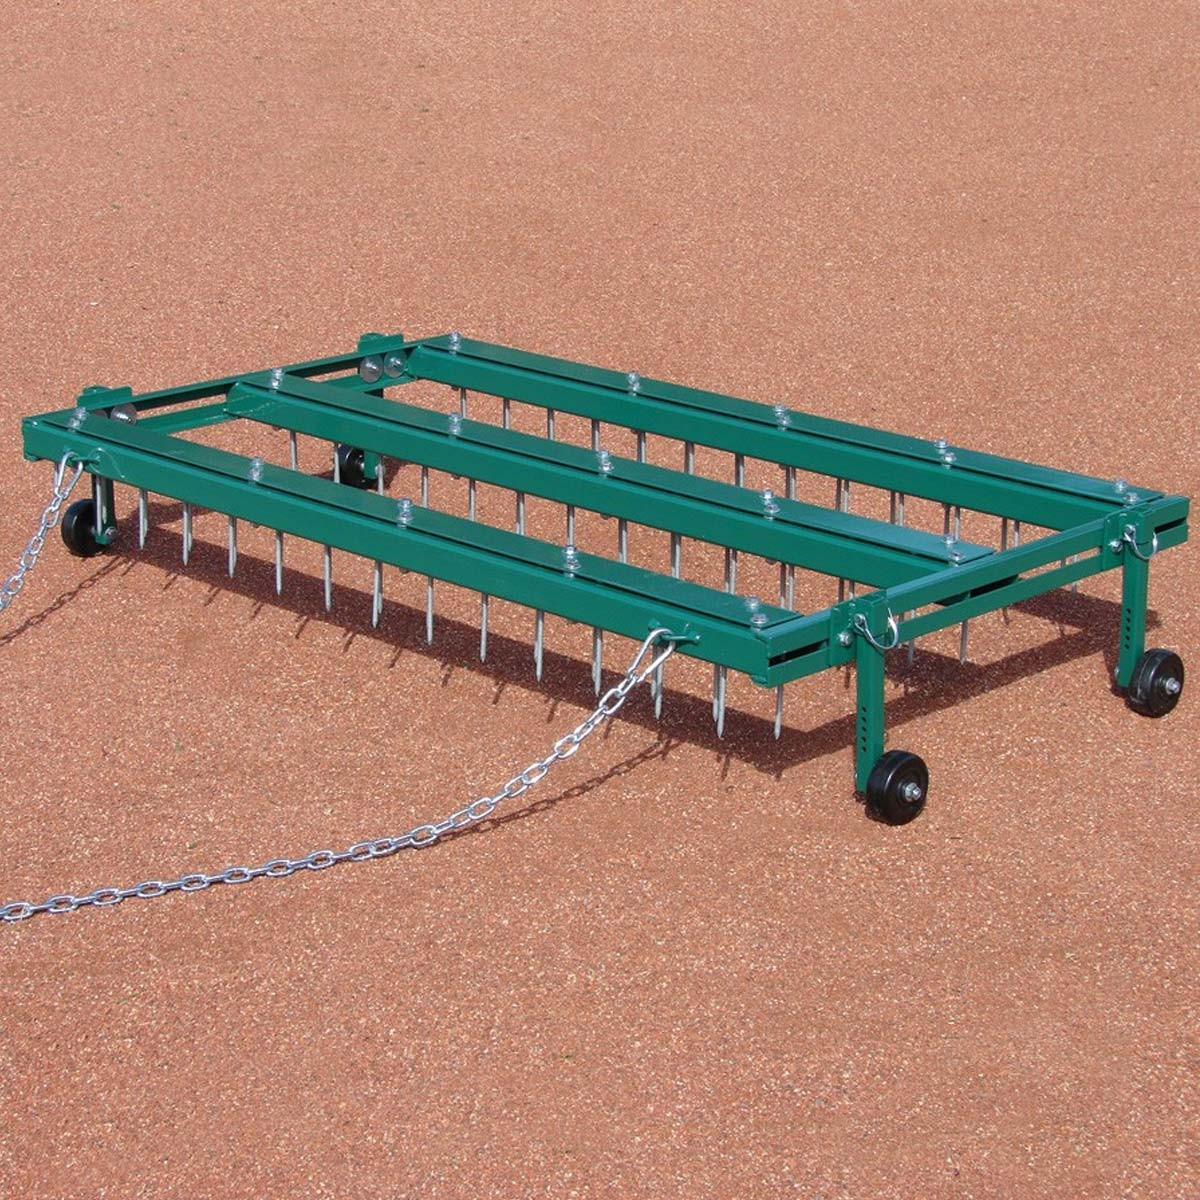 Shown With Optional Big League Infield Nail Drag, 5'W x 3'L (A15-217)